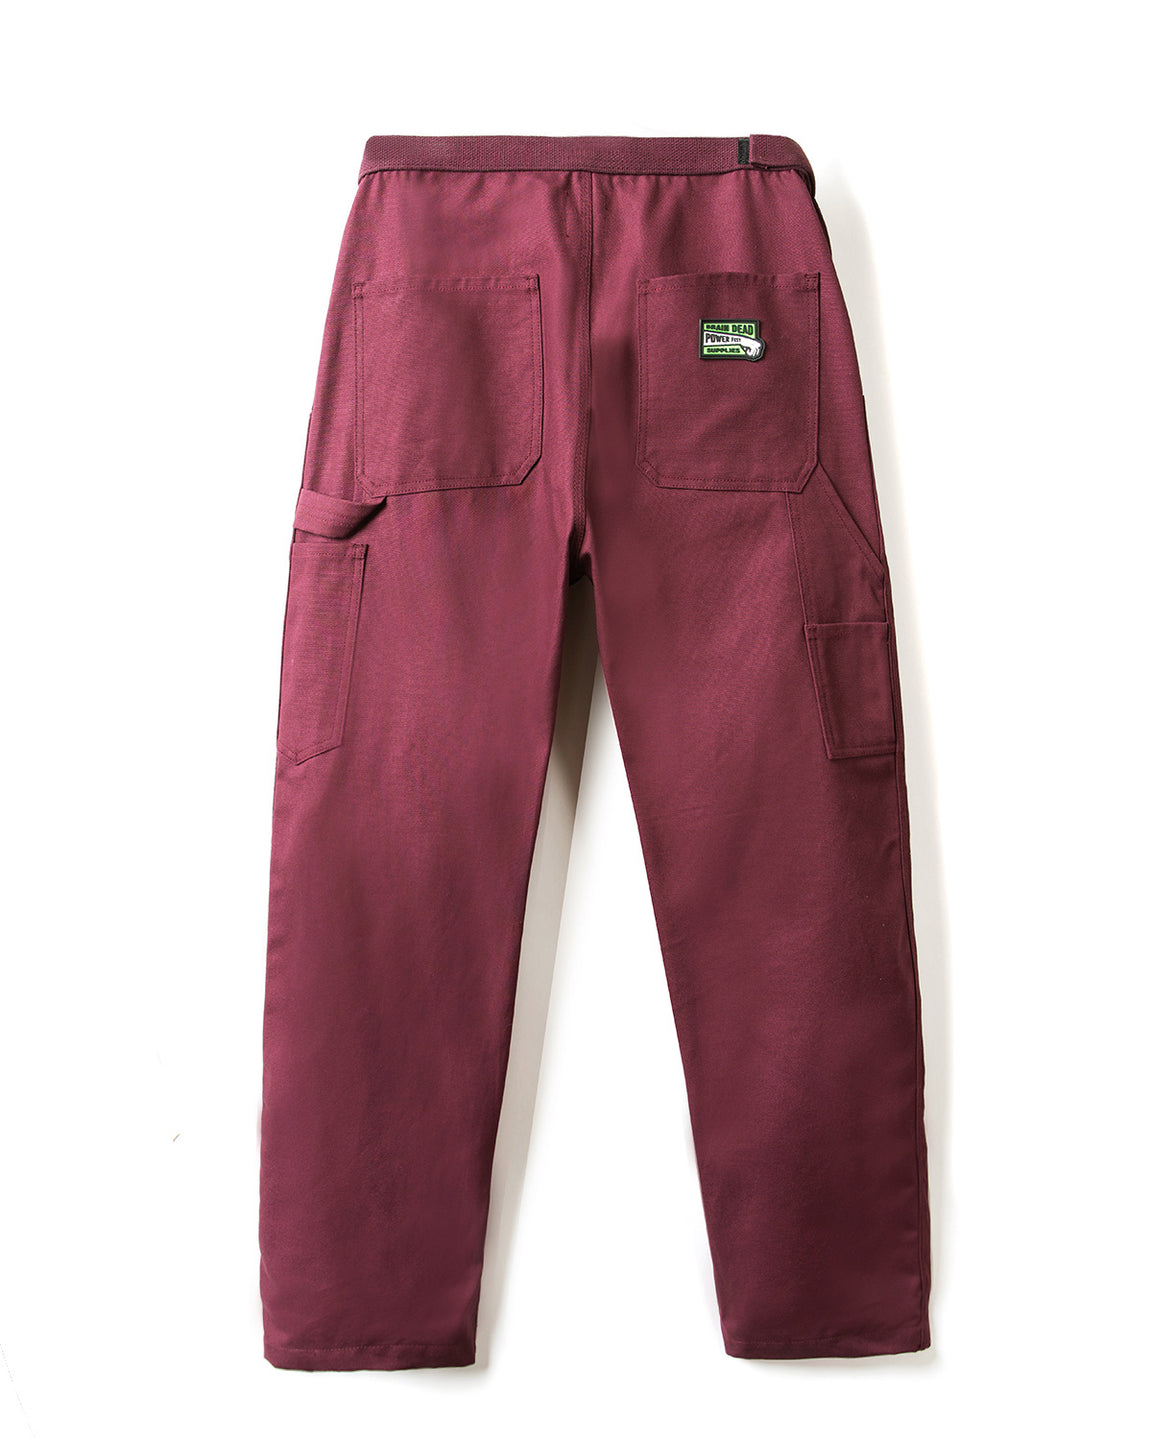 Hard/Software Velcro Carpenter Pant - Burgundy Canvas